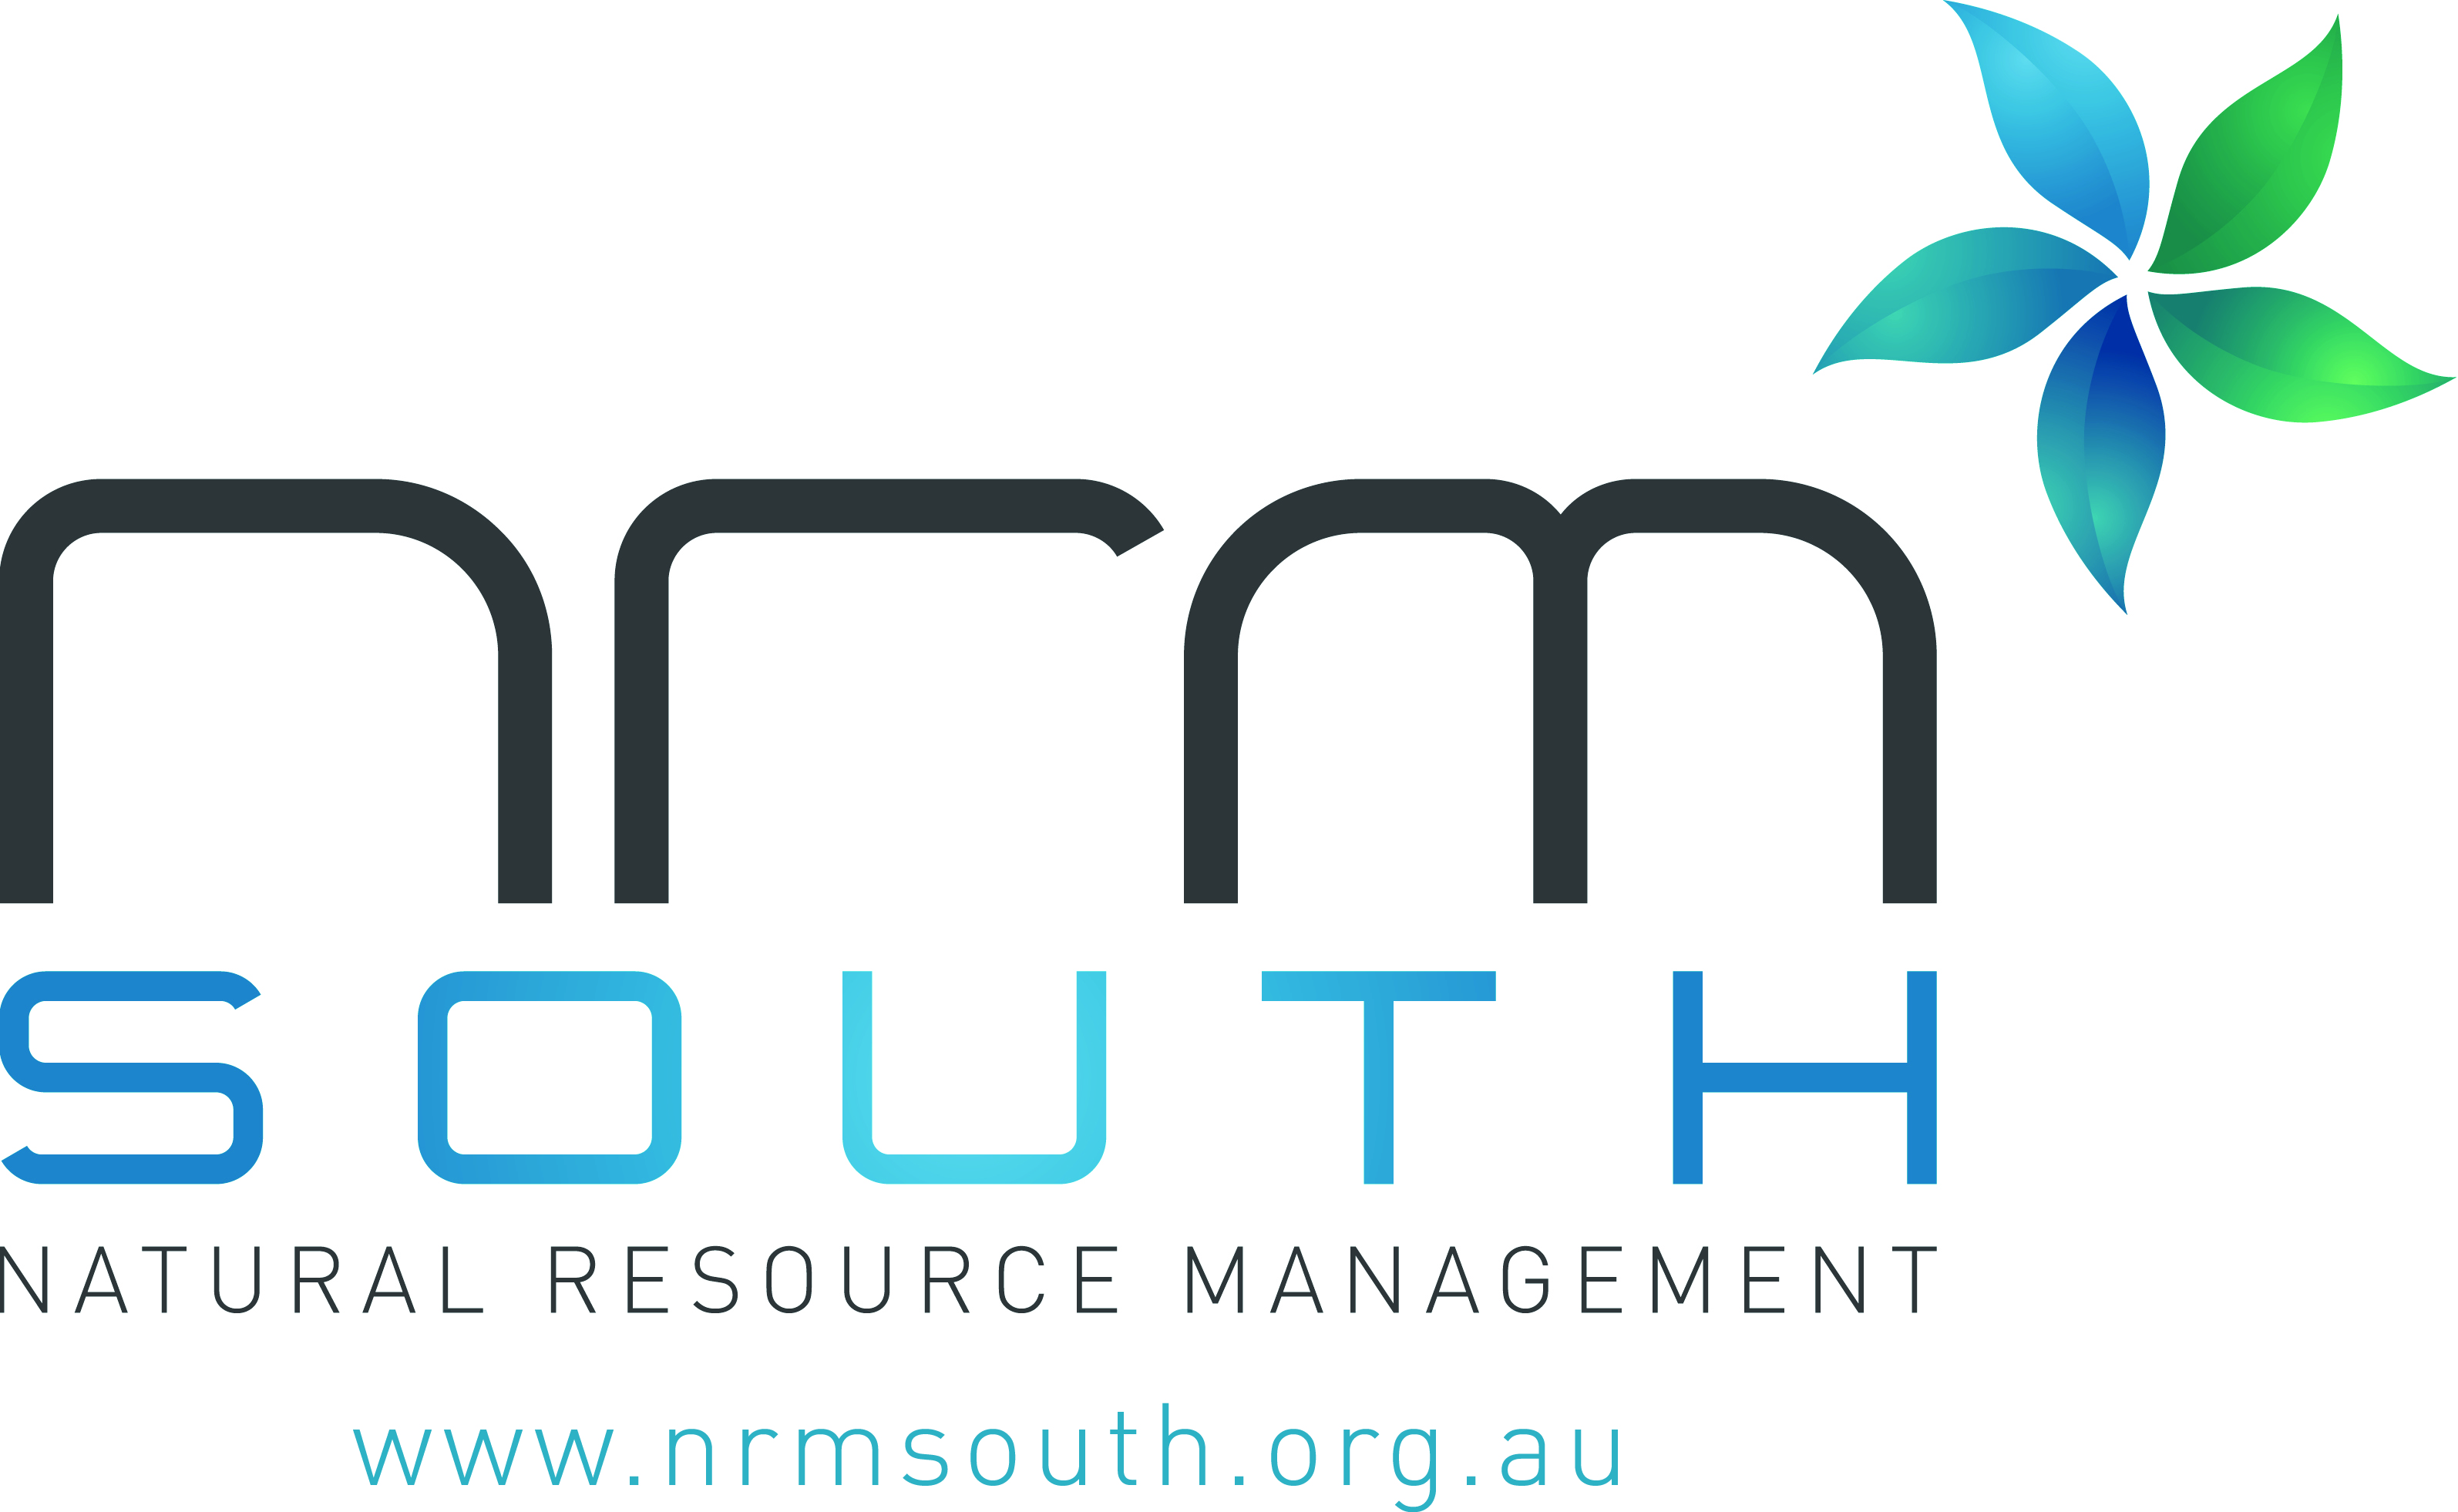 NRMjobs - 20002978 - Communications Officer - The Tasmanian Smart Seafood Partnership Project